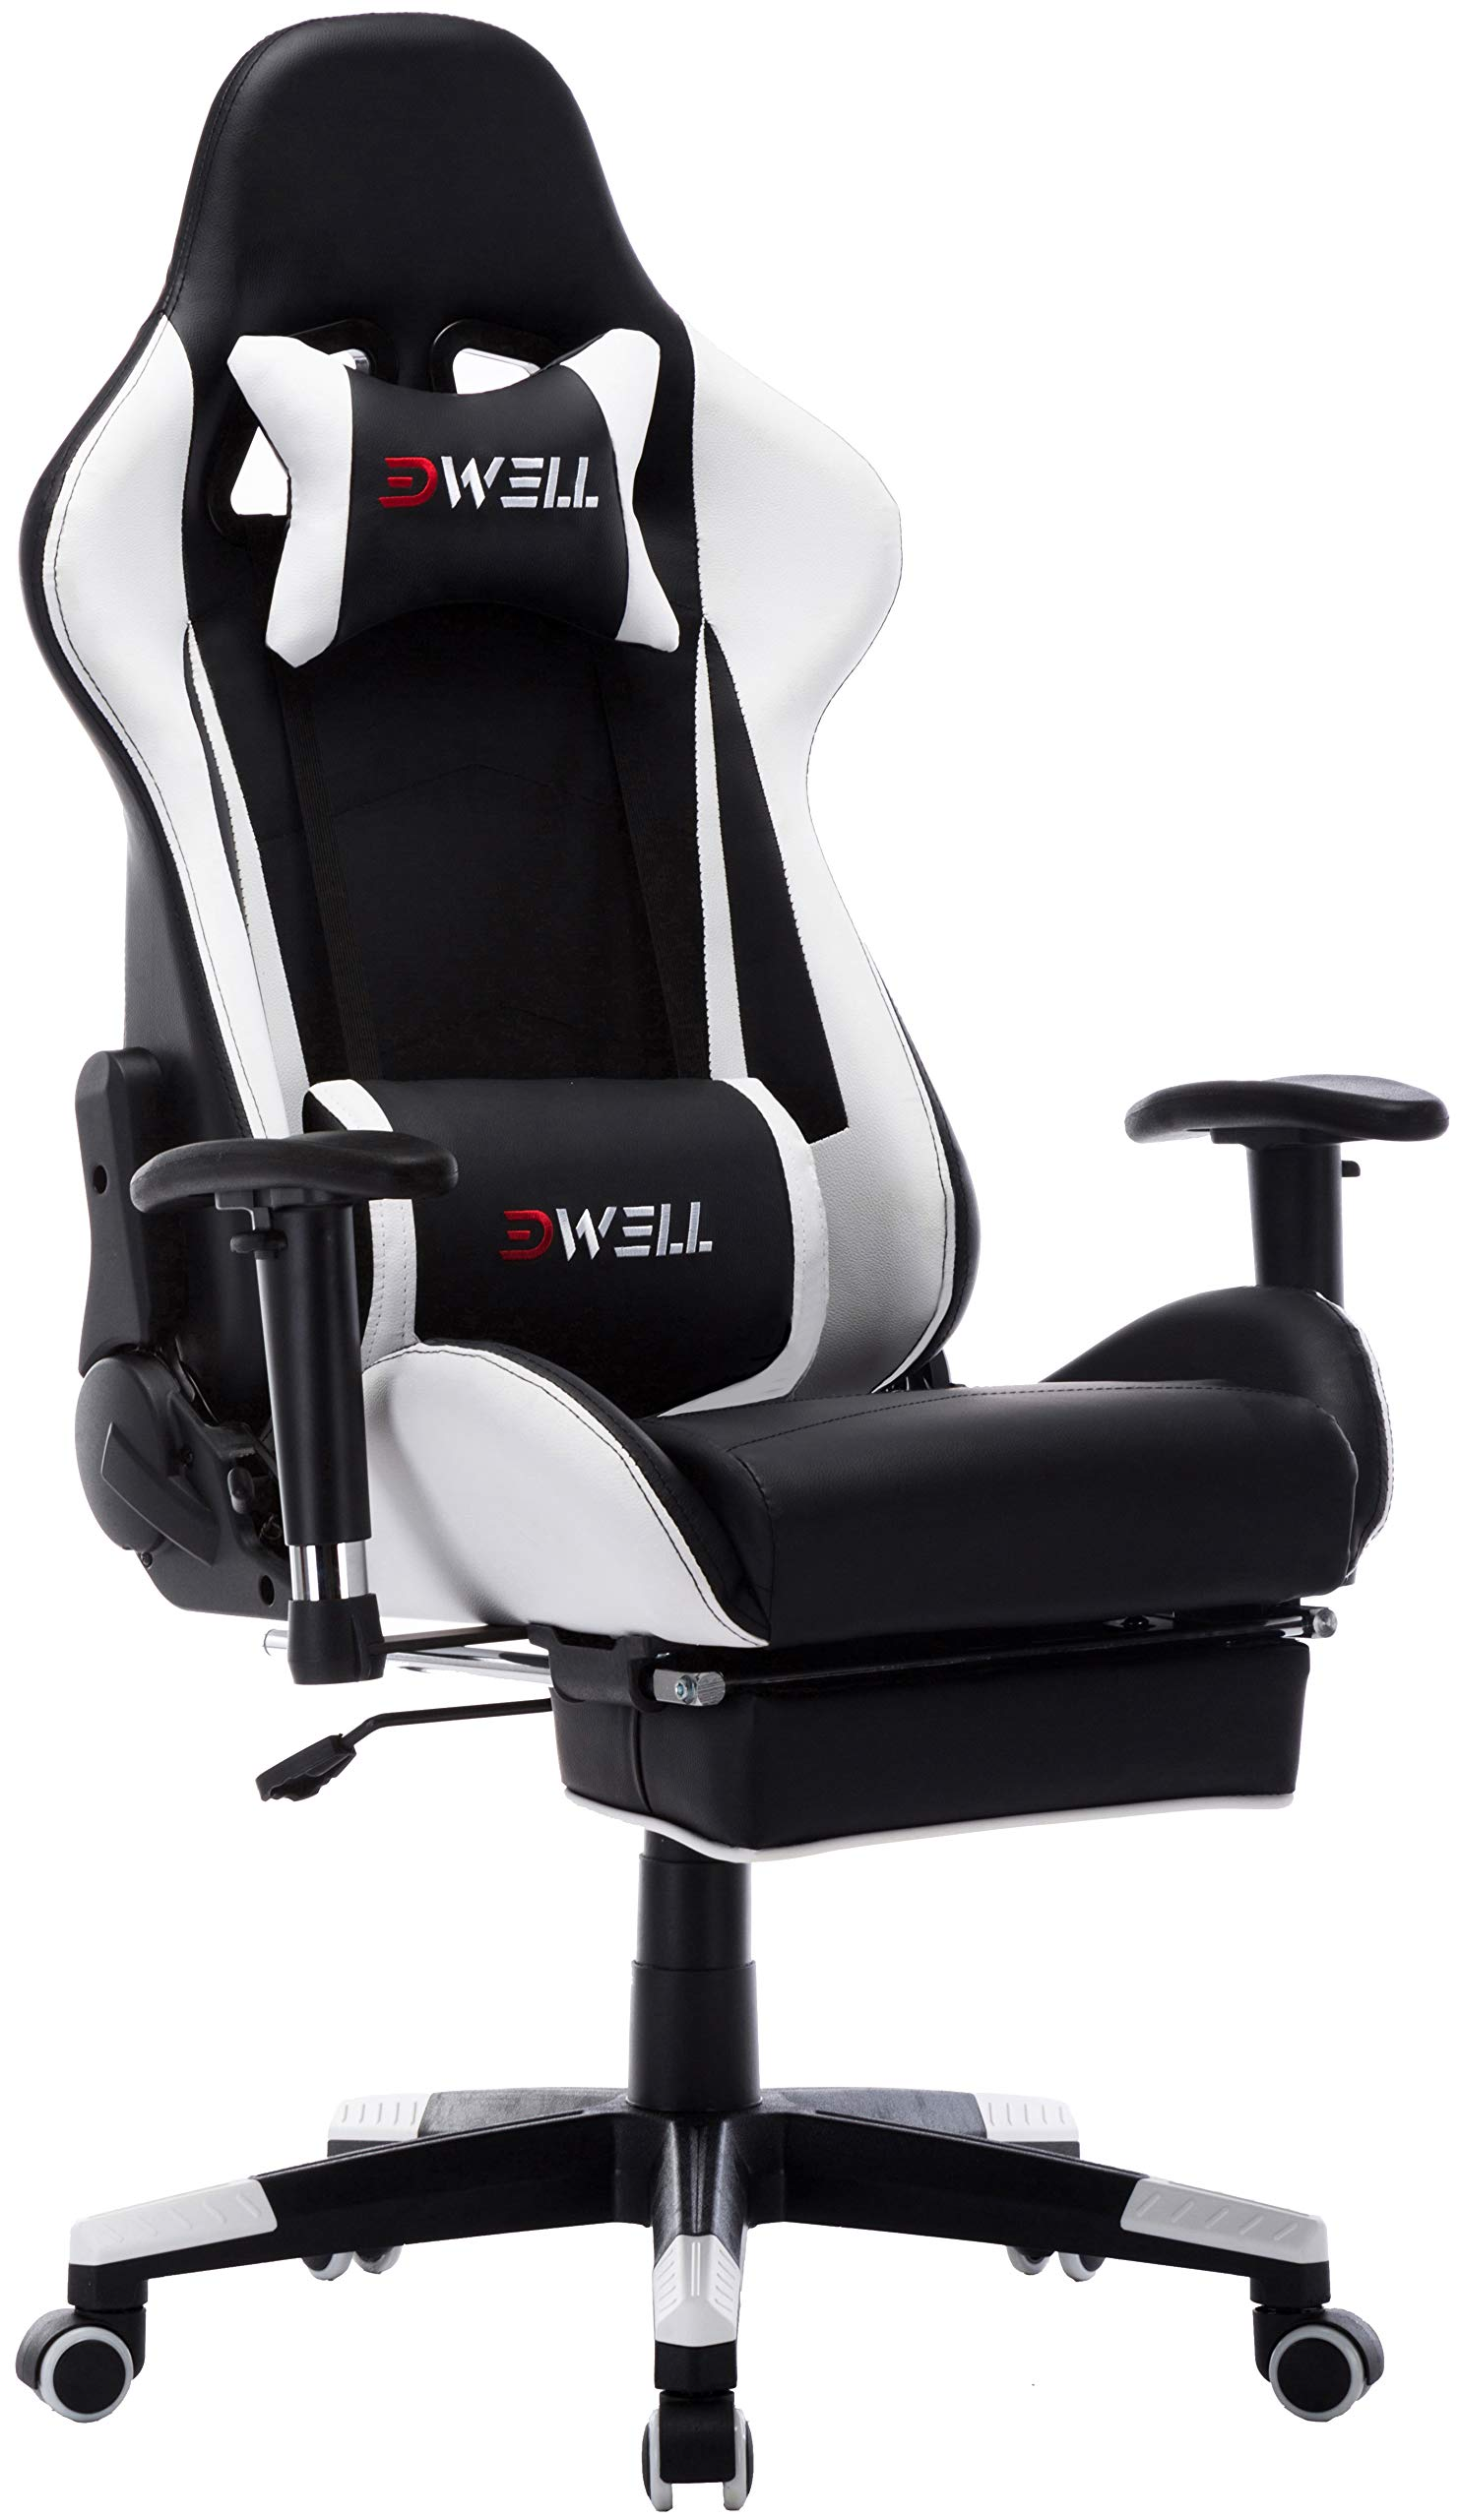 Computer Gaming Chair Office Desk Chair,Large Size Racing Chair High-Back Ergonomic PU Leather Adjustable Esports Desk Chair with Headrest Massage Lumbar Support Retractable Footrest (White) by Ansuit